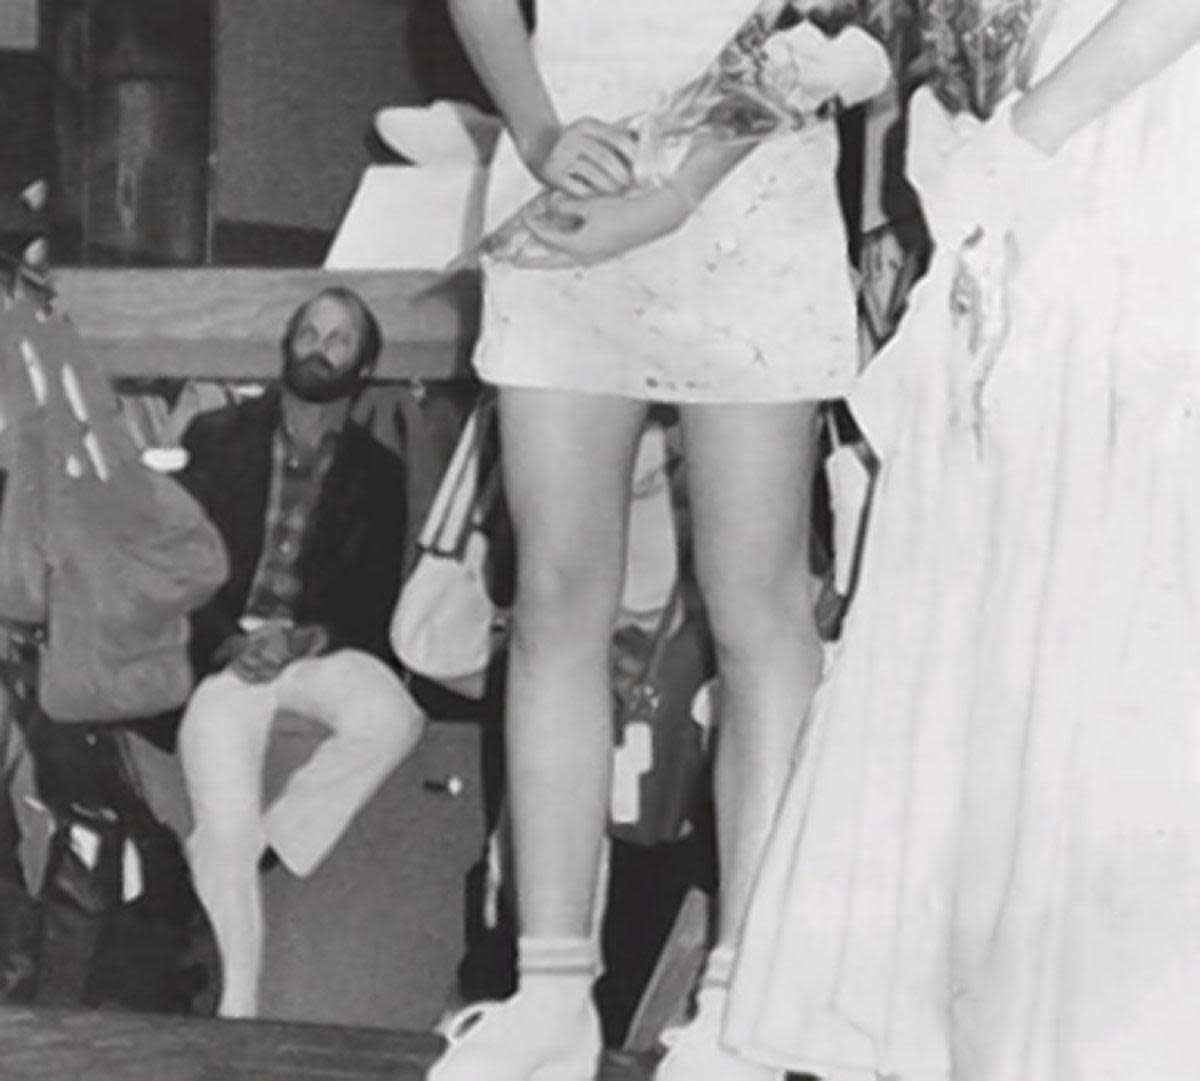 A photographer captures a picture of Christopher Wilder at a pageant shortly before Michelle Korfman's disappearance.